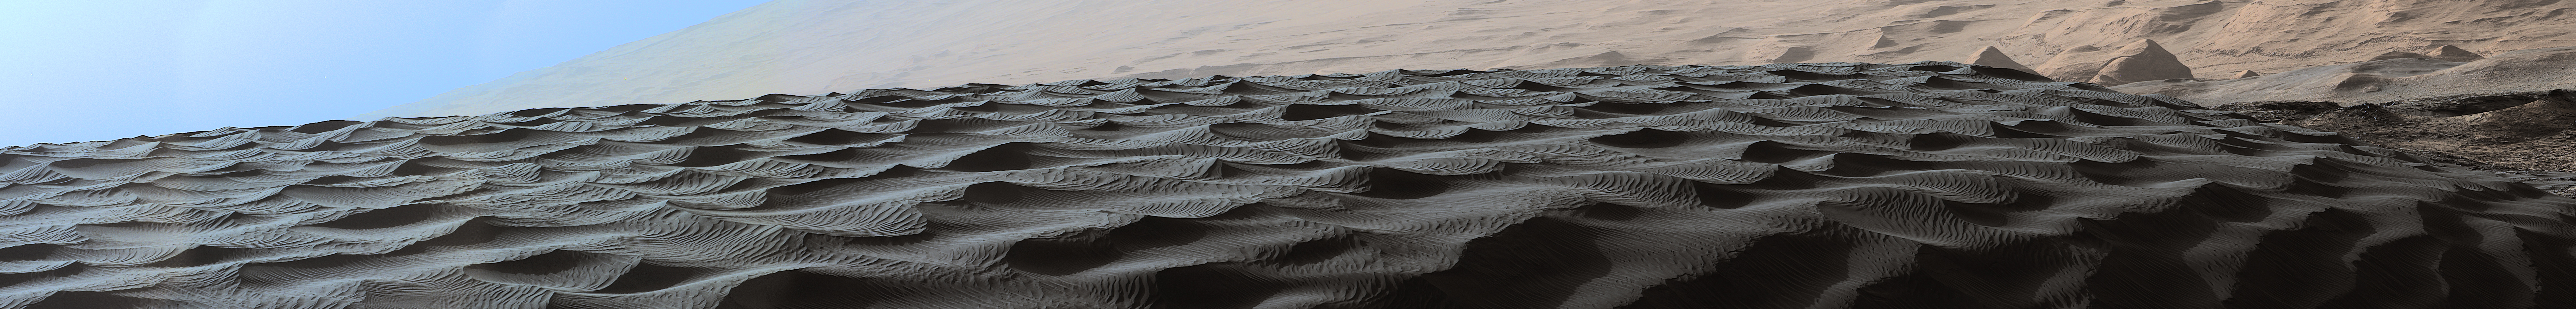 Two sizes of ripples are evident in this Dec. 13, 2015, view of a top of a Martian sand dune, from NASA's Curiosity Mars rover. Sand dunes and the smaller type of ripples also exist on Earth.  The larger ripples are a type not seen on Earth nor previously recognized as a distinct type on Mars.